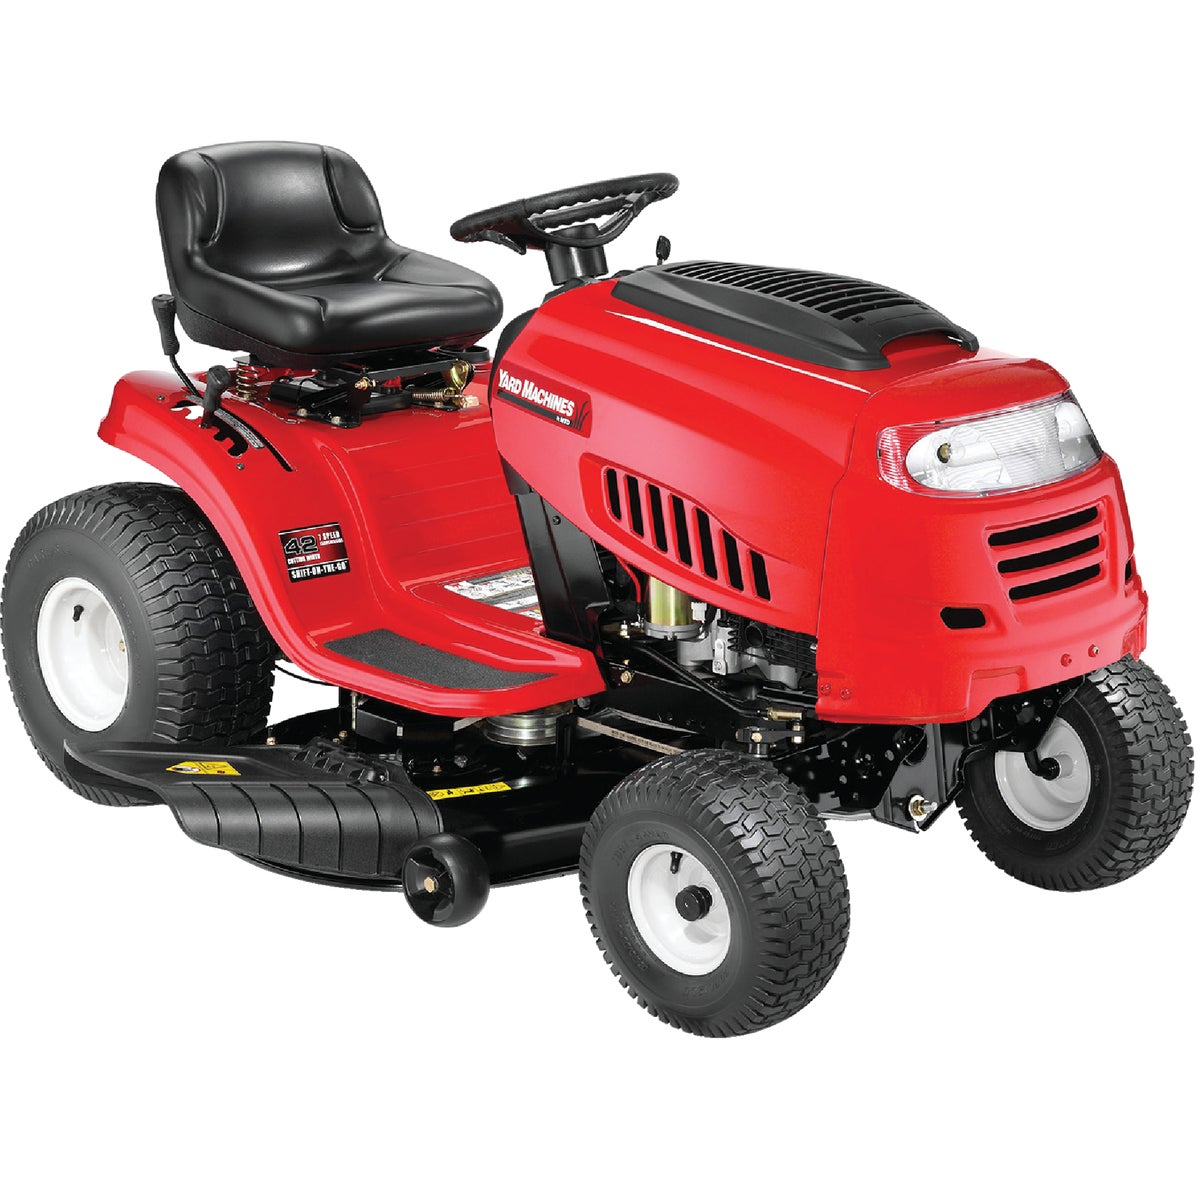 "42"" LAWN TRACTOR - 13A2775S000 by M T D Products"